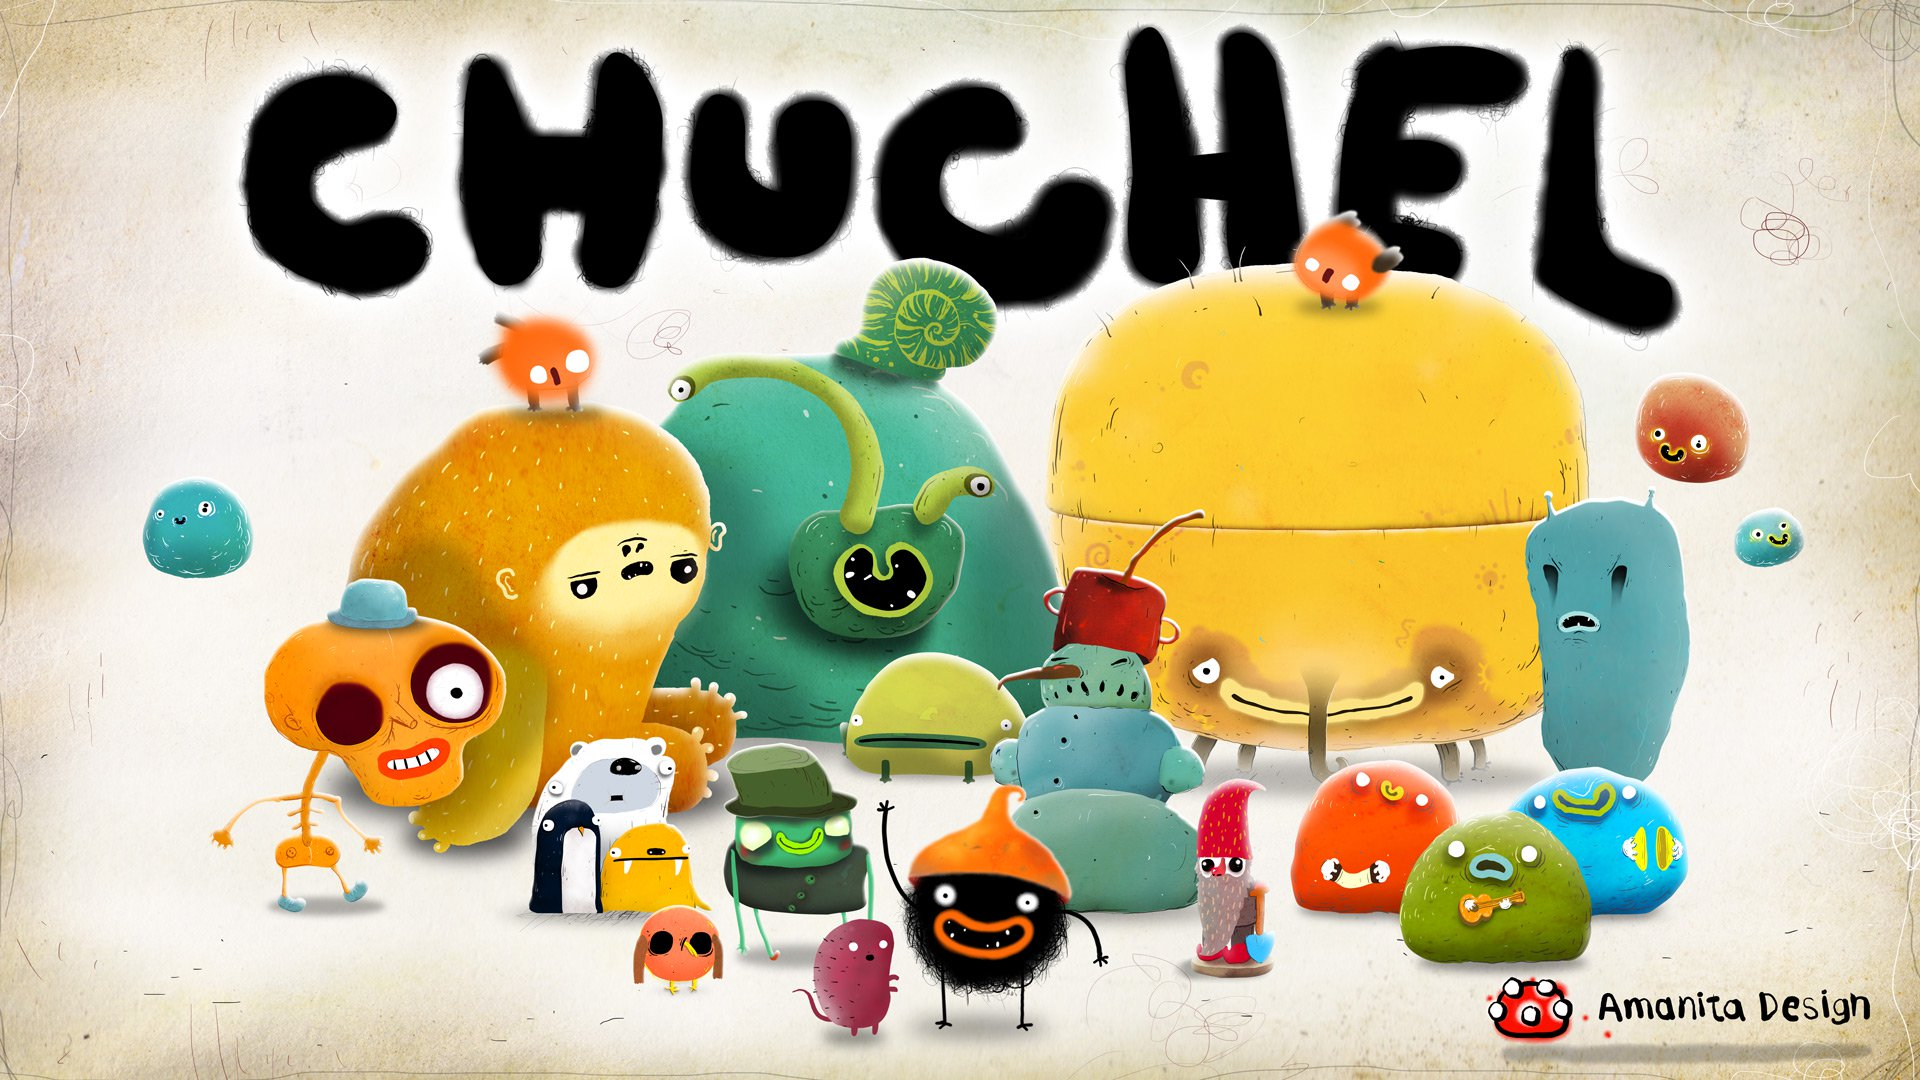 Review game CHUCHEL: cherry madness in Czech